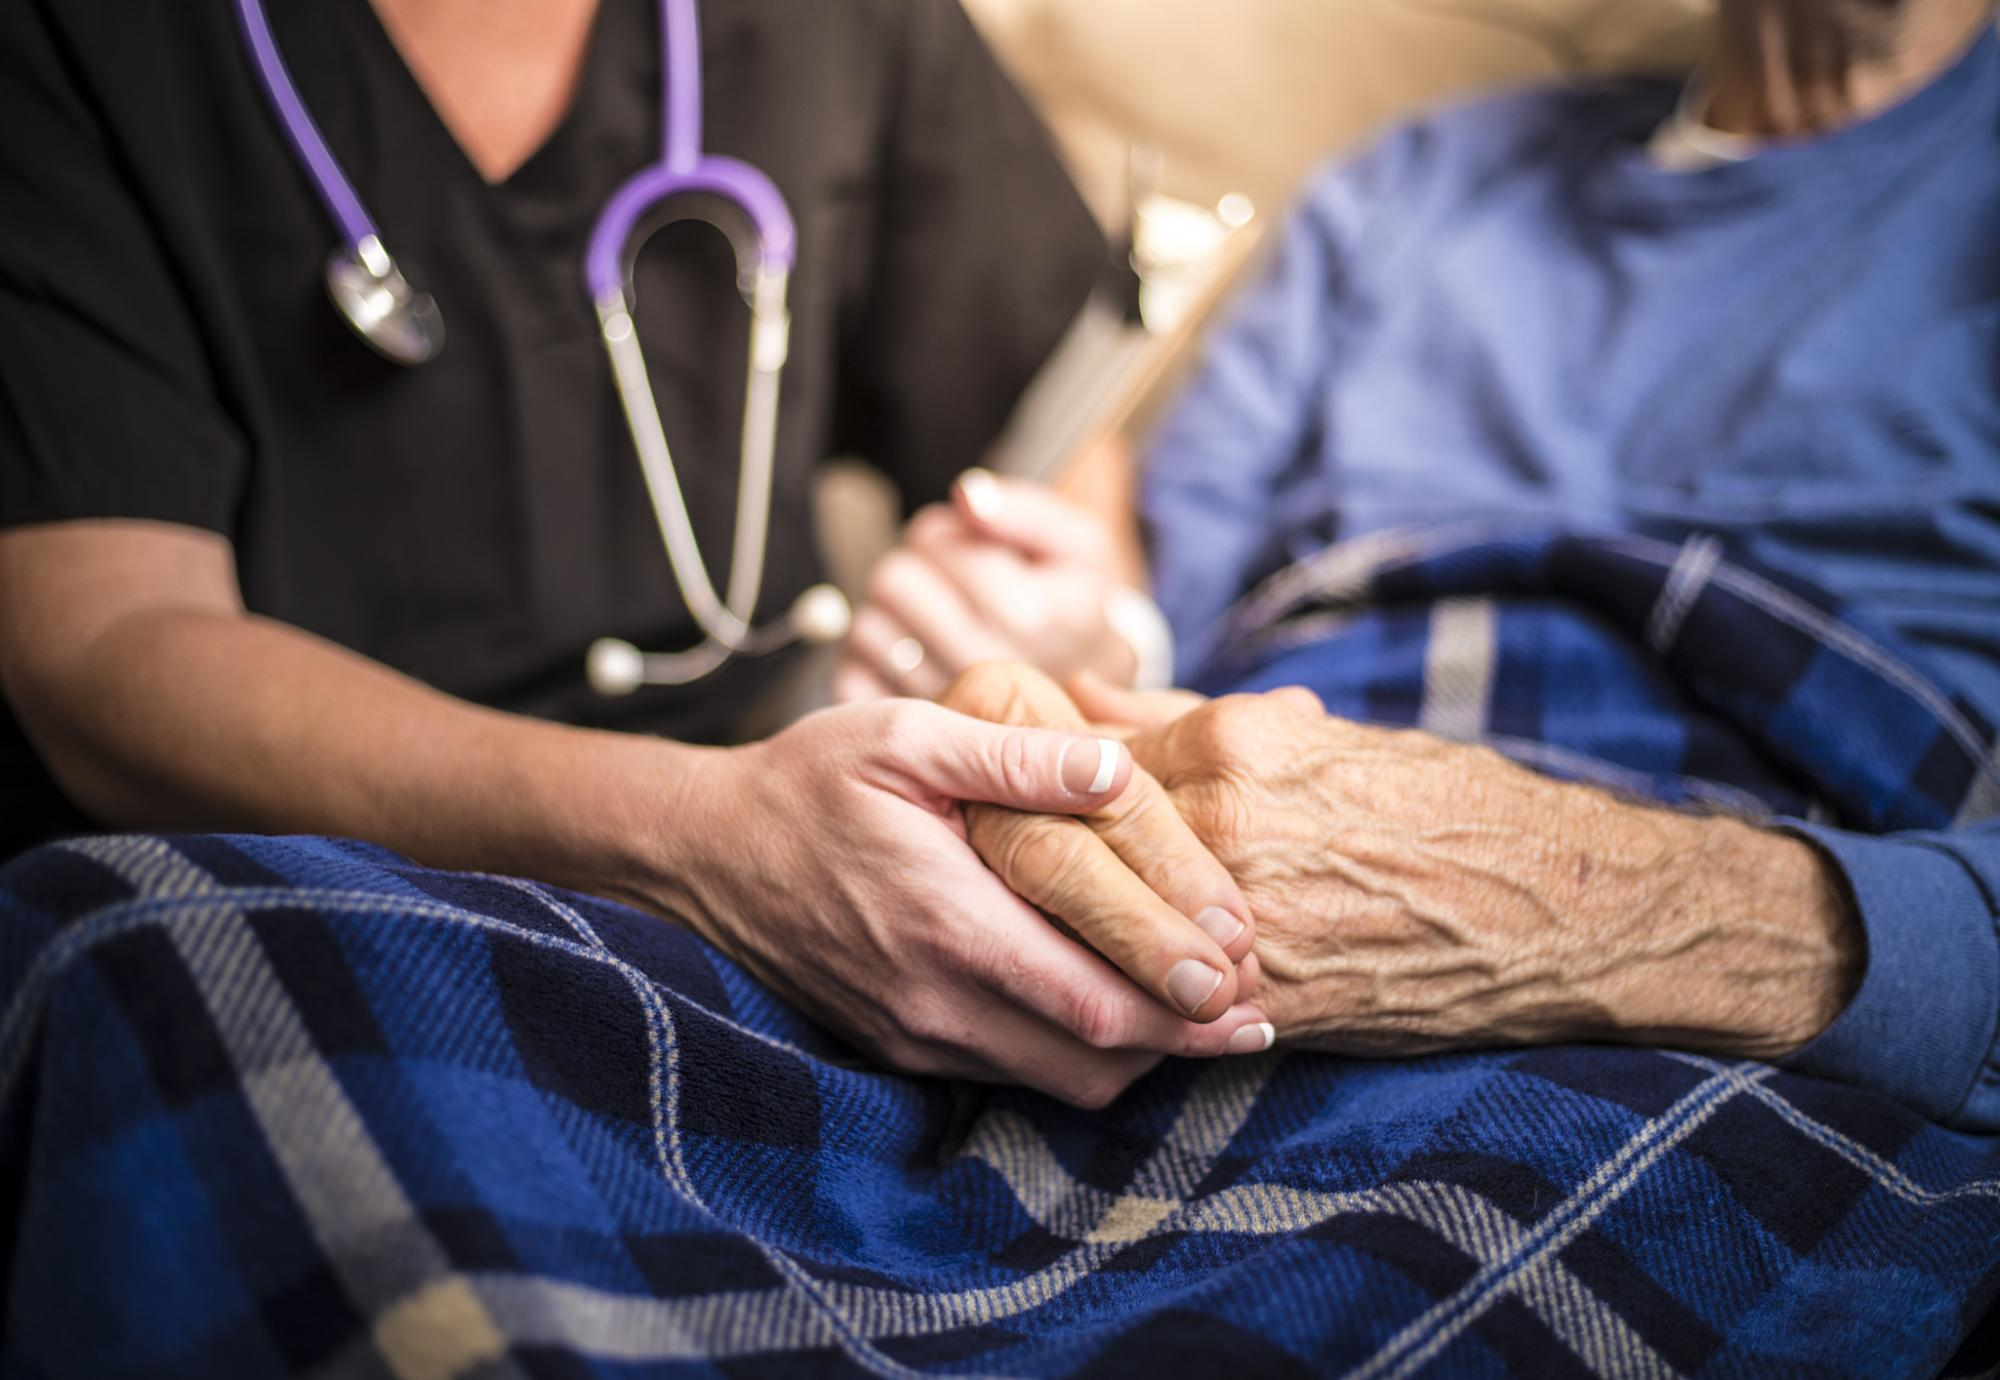 Nurse holding hand of elderly patient